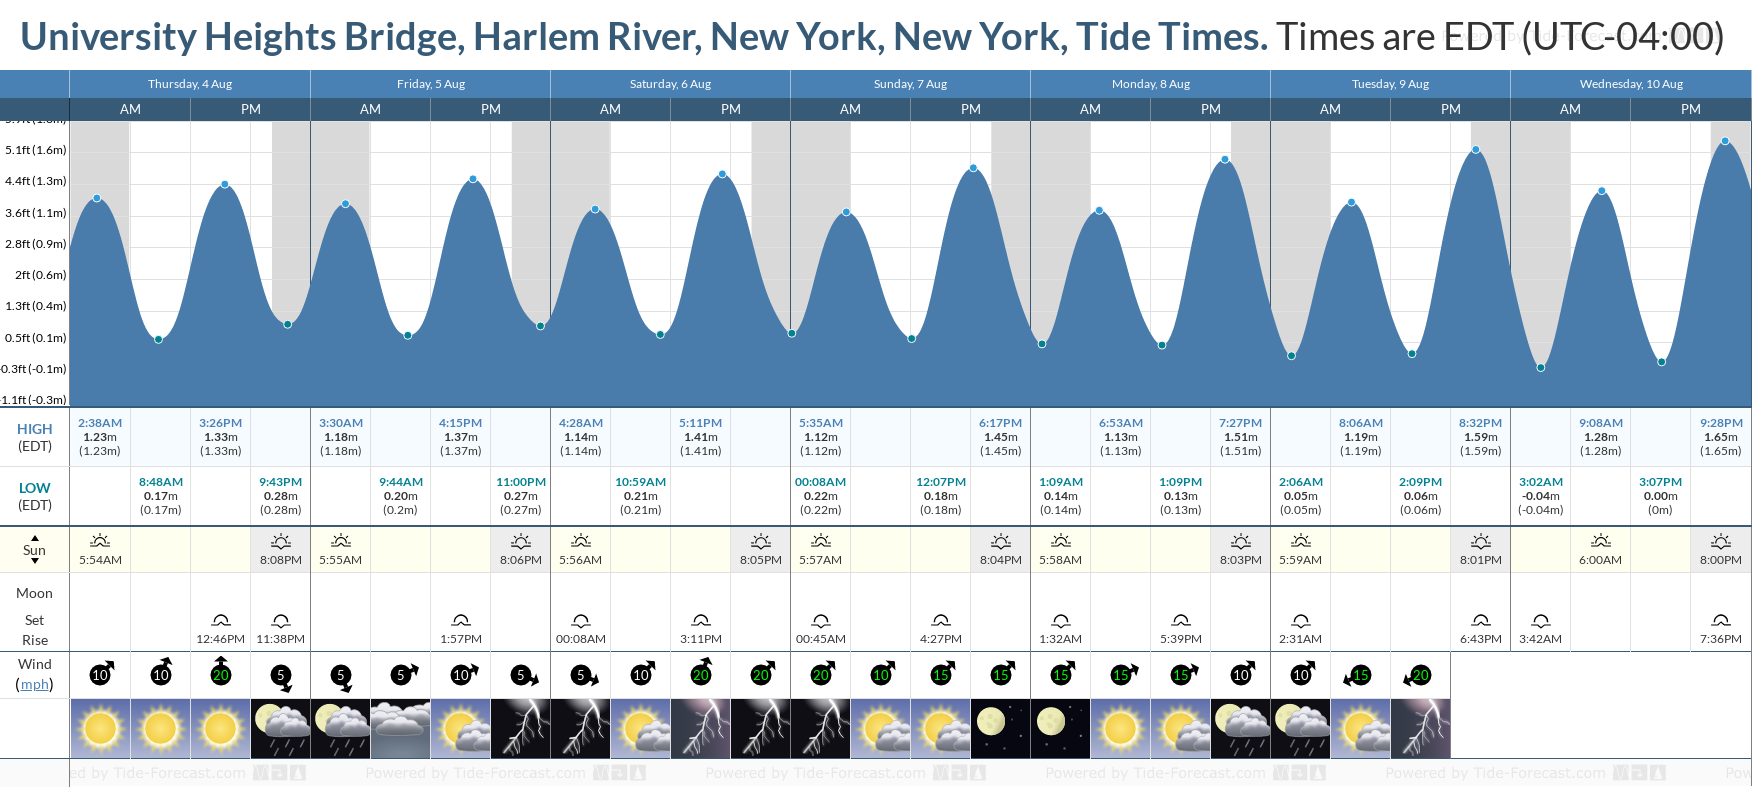 University Heights Bridge, Harlem River, New York, New York Tide Chart including high and low tide tide times for the next 7 days